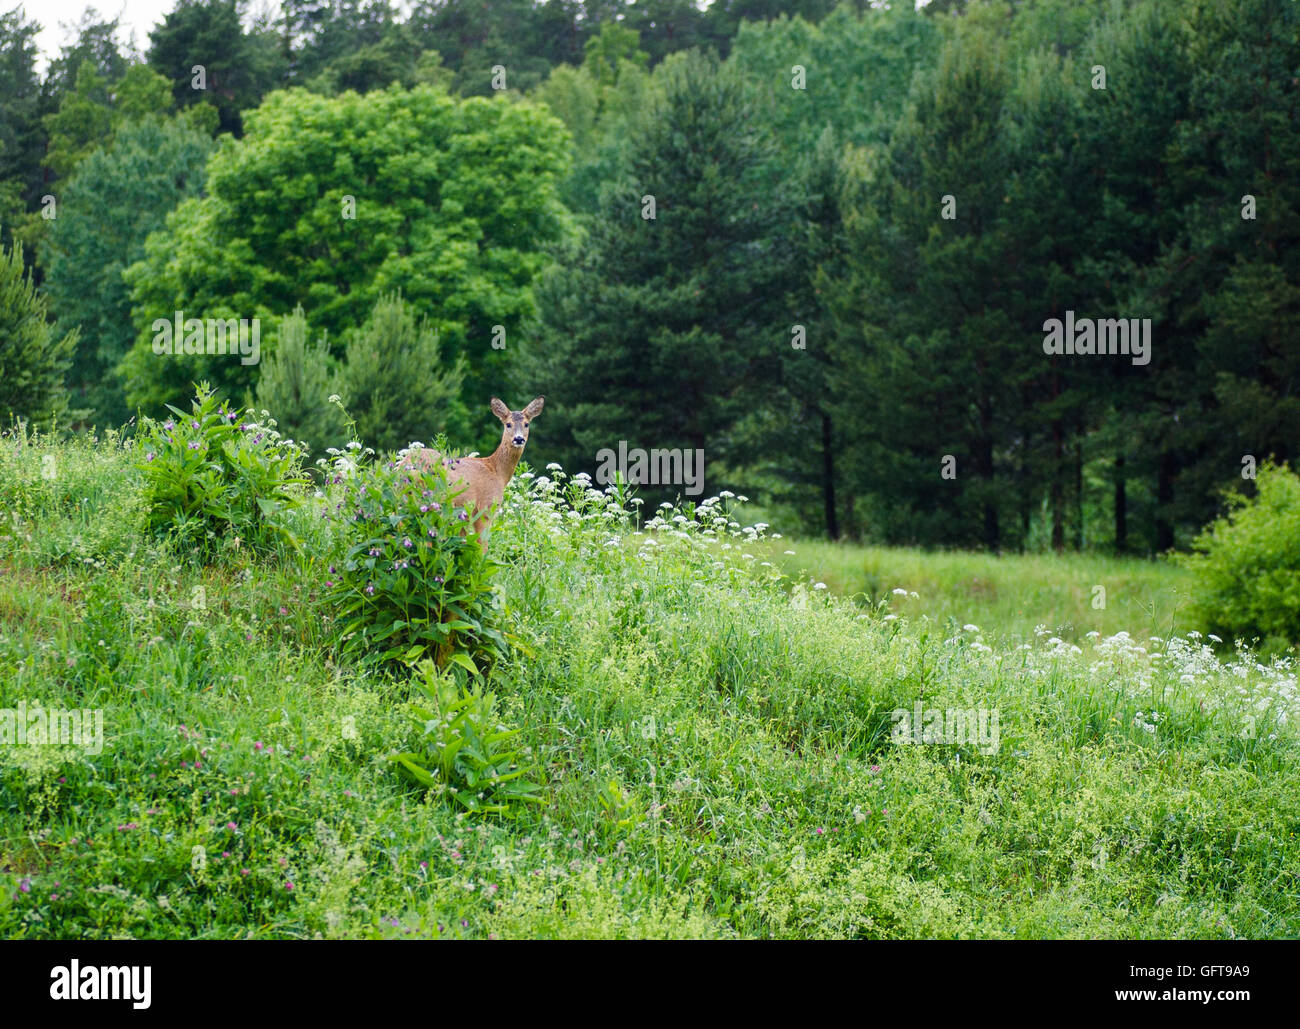 A roe deer in the Swedish forest. Stock Photo